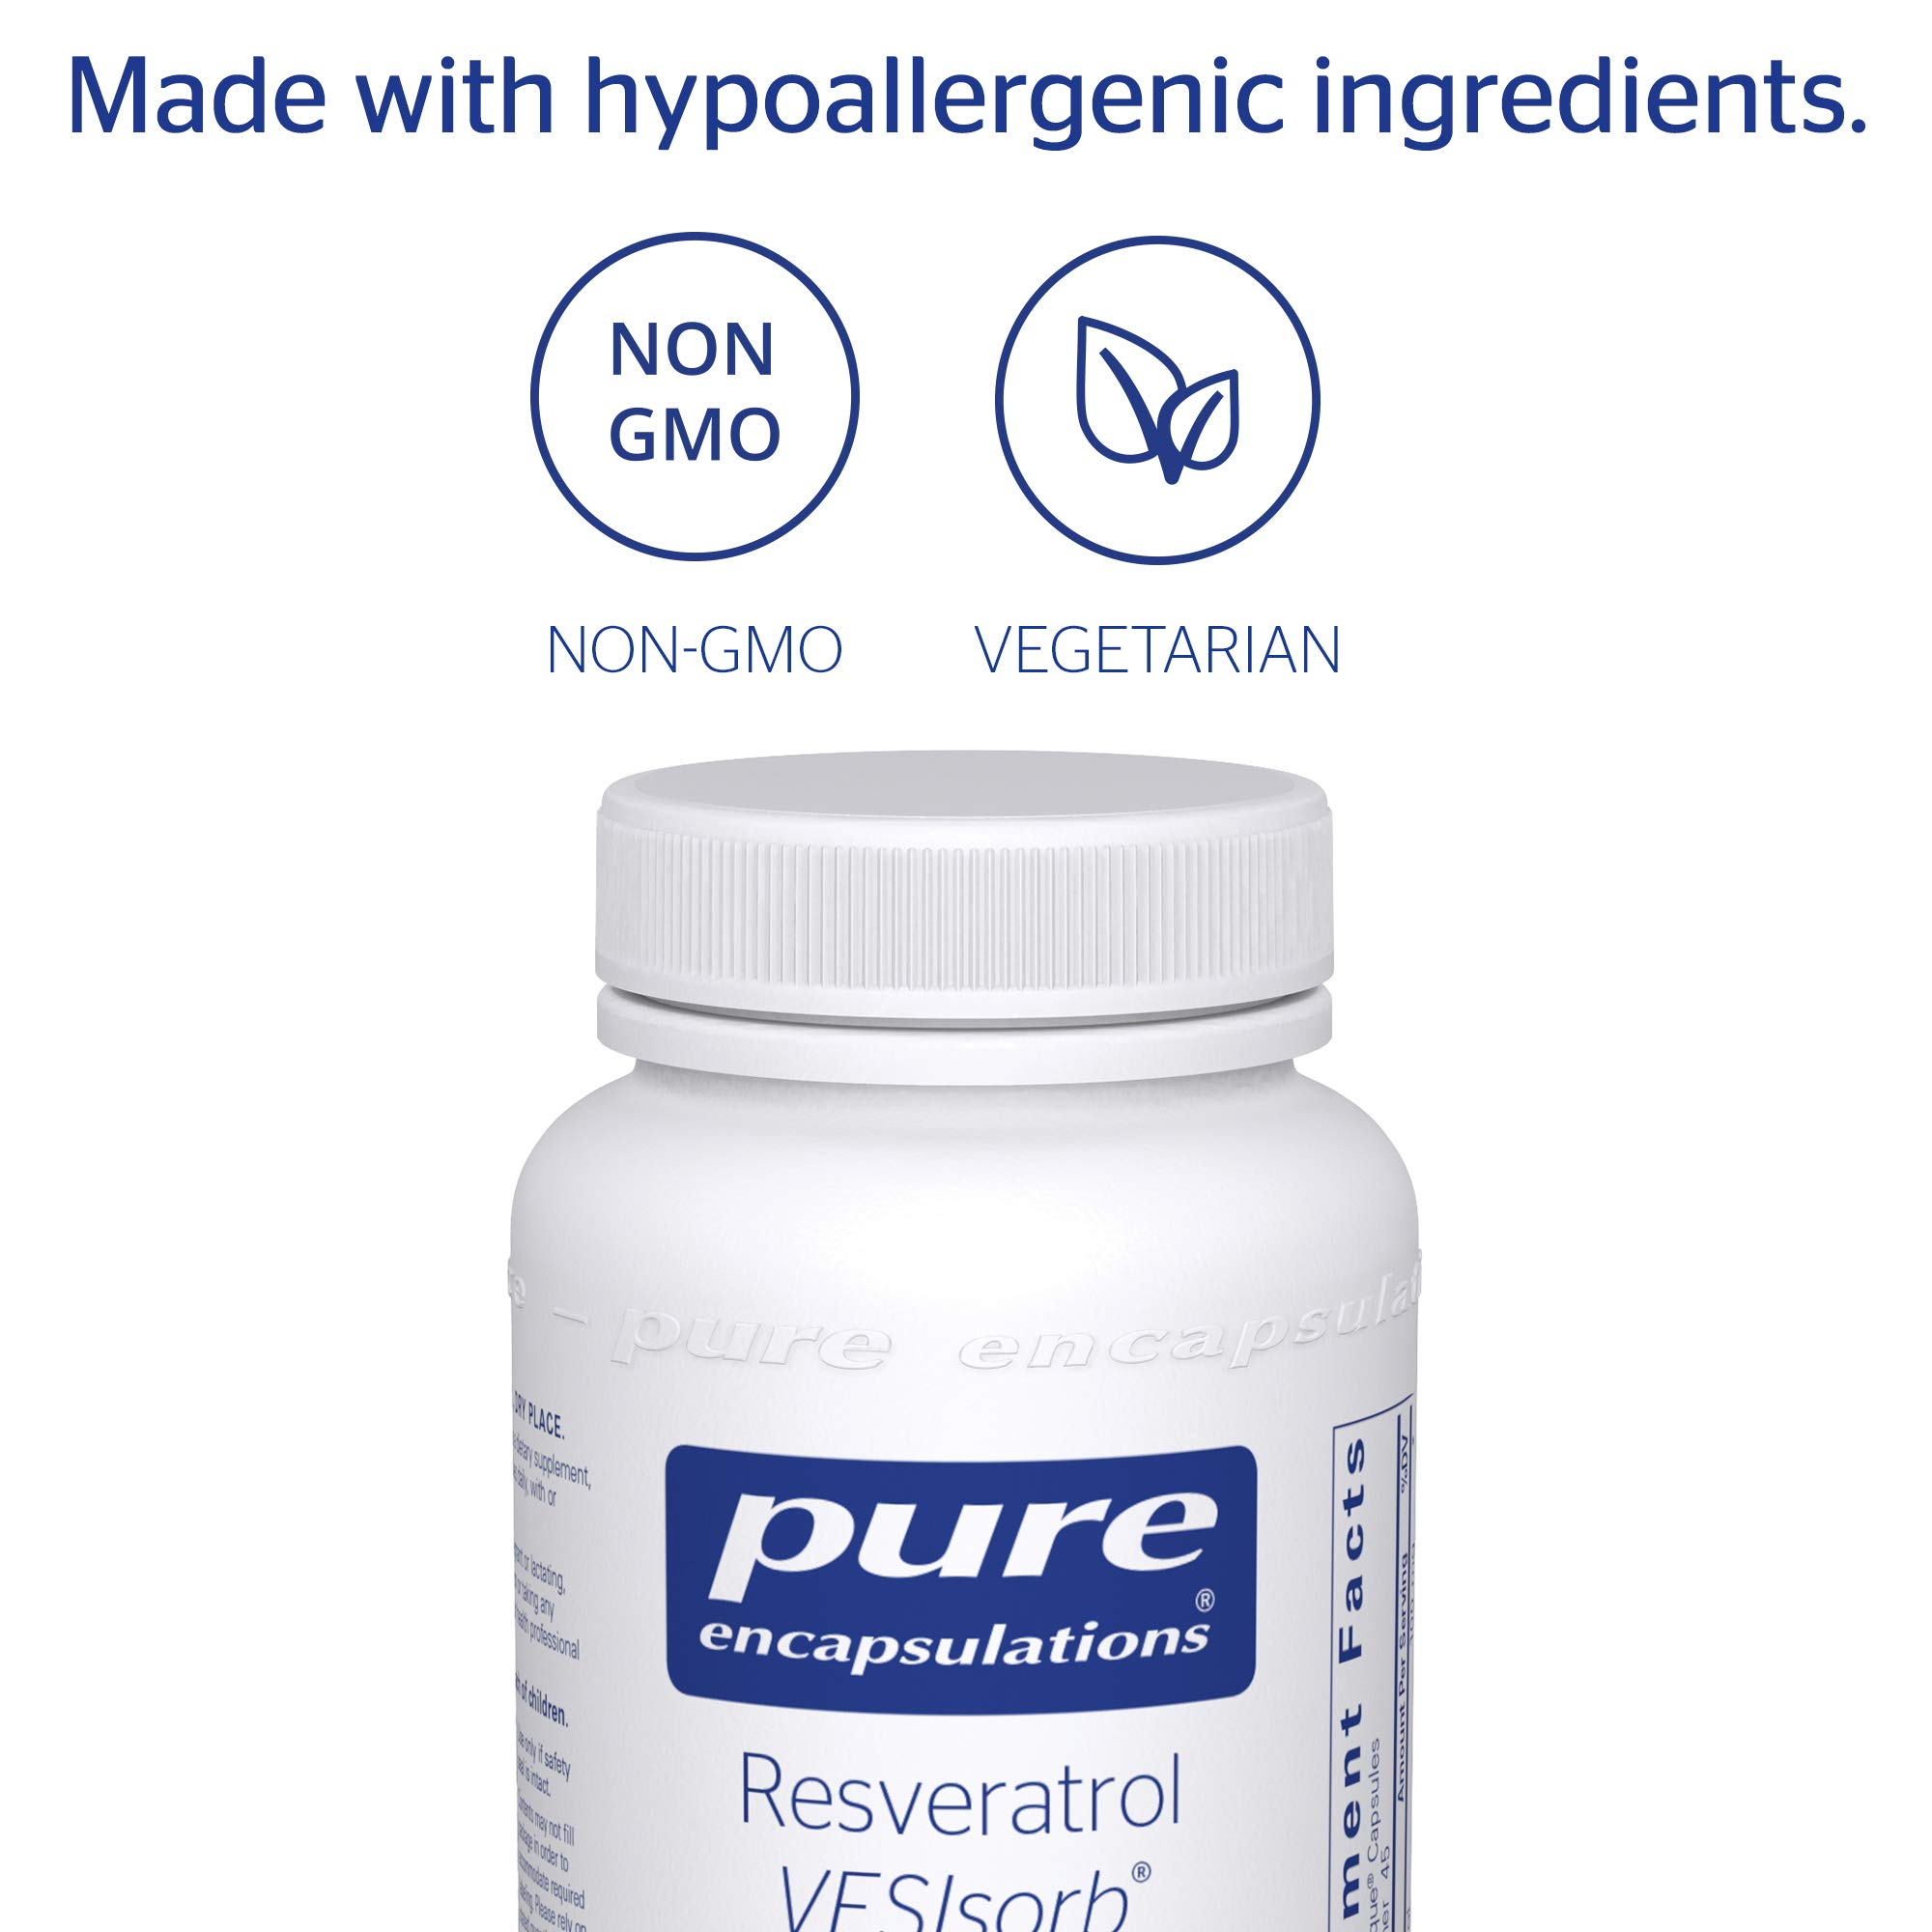 Pure Encapsulations - Resveratrol VESIsorb - Hypoallergenic Support for Cellular, Cardiovascular, and Neurocognitive Health* - 90 Caplique Capsules by Pure Encapsulations (Image #4)